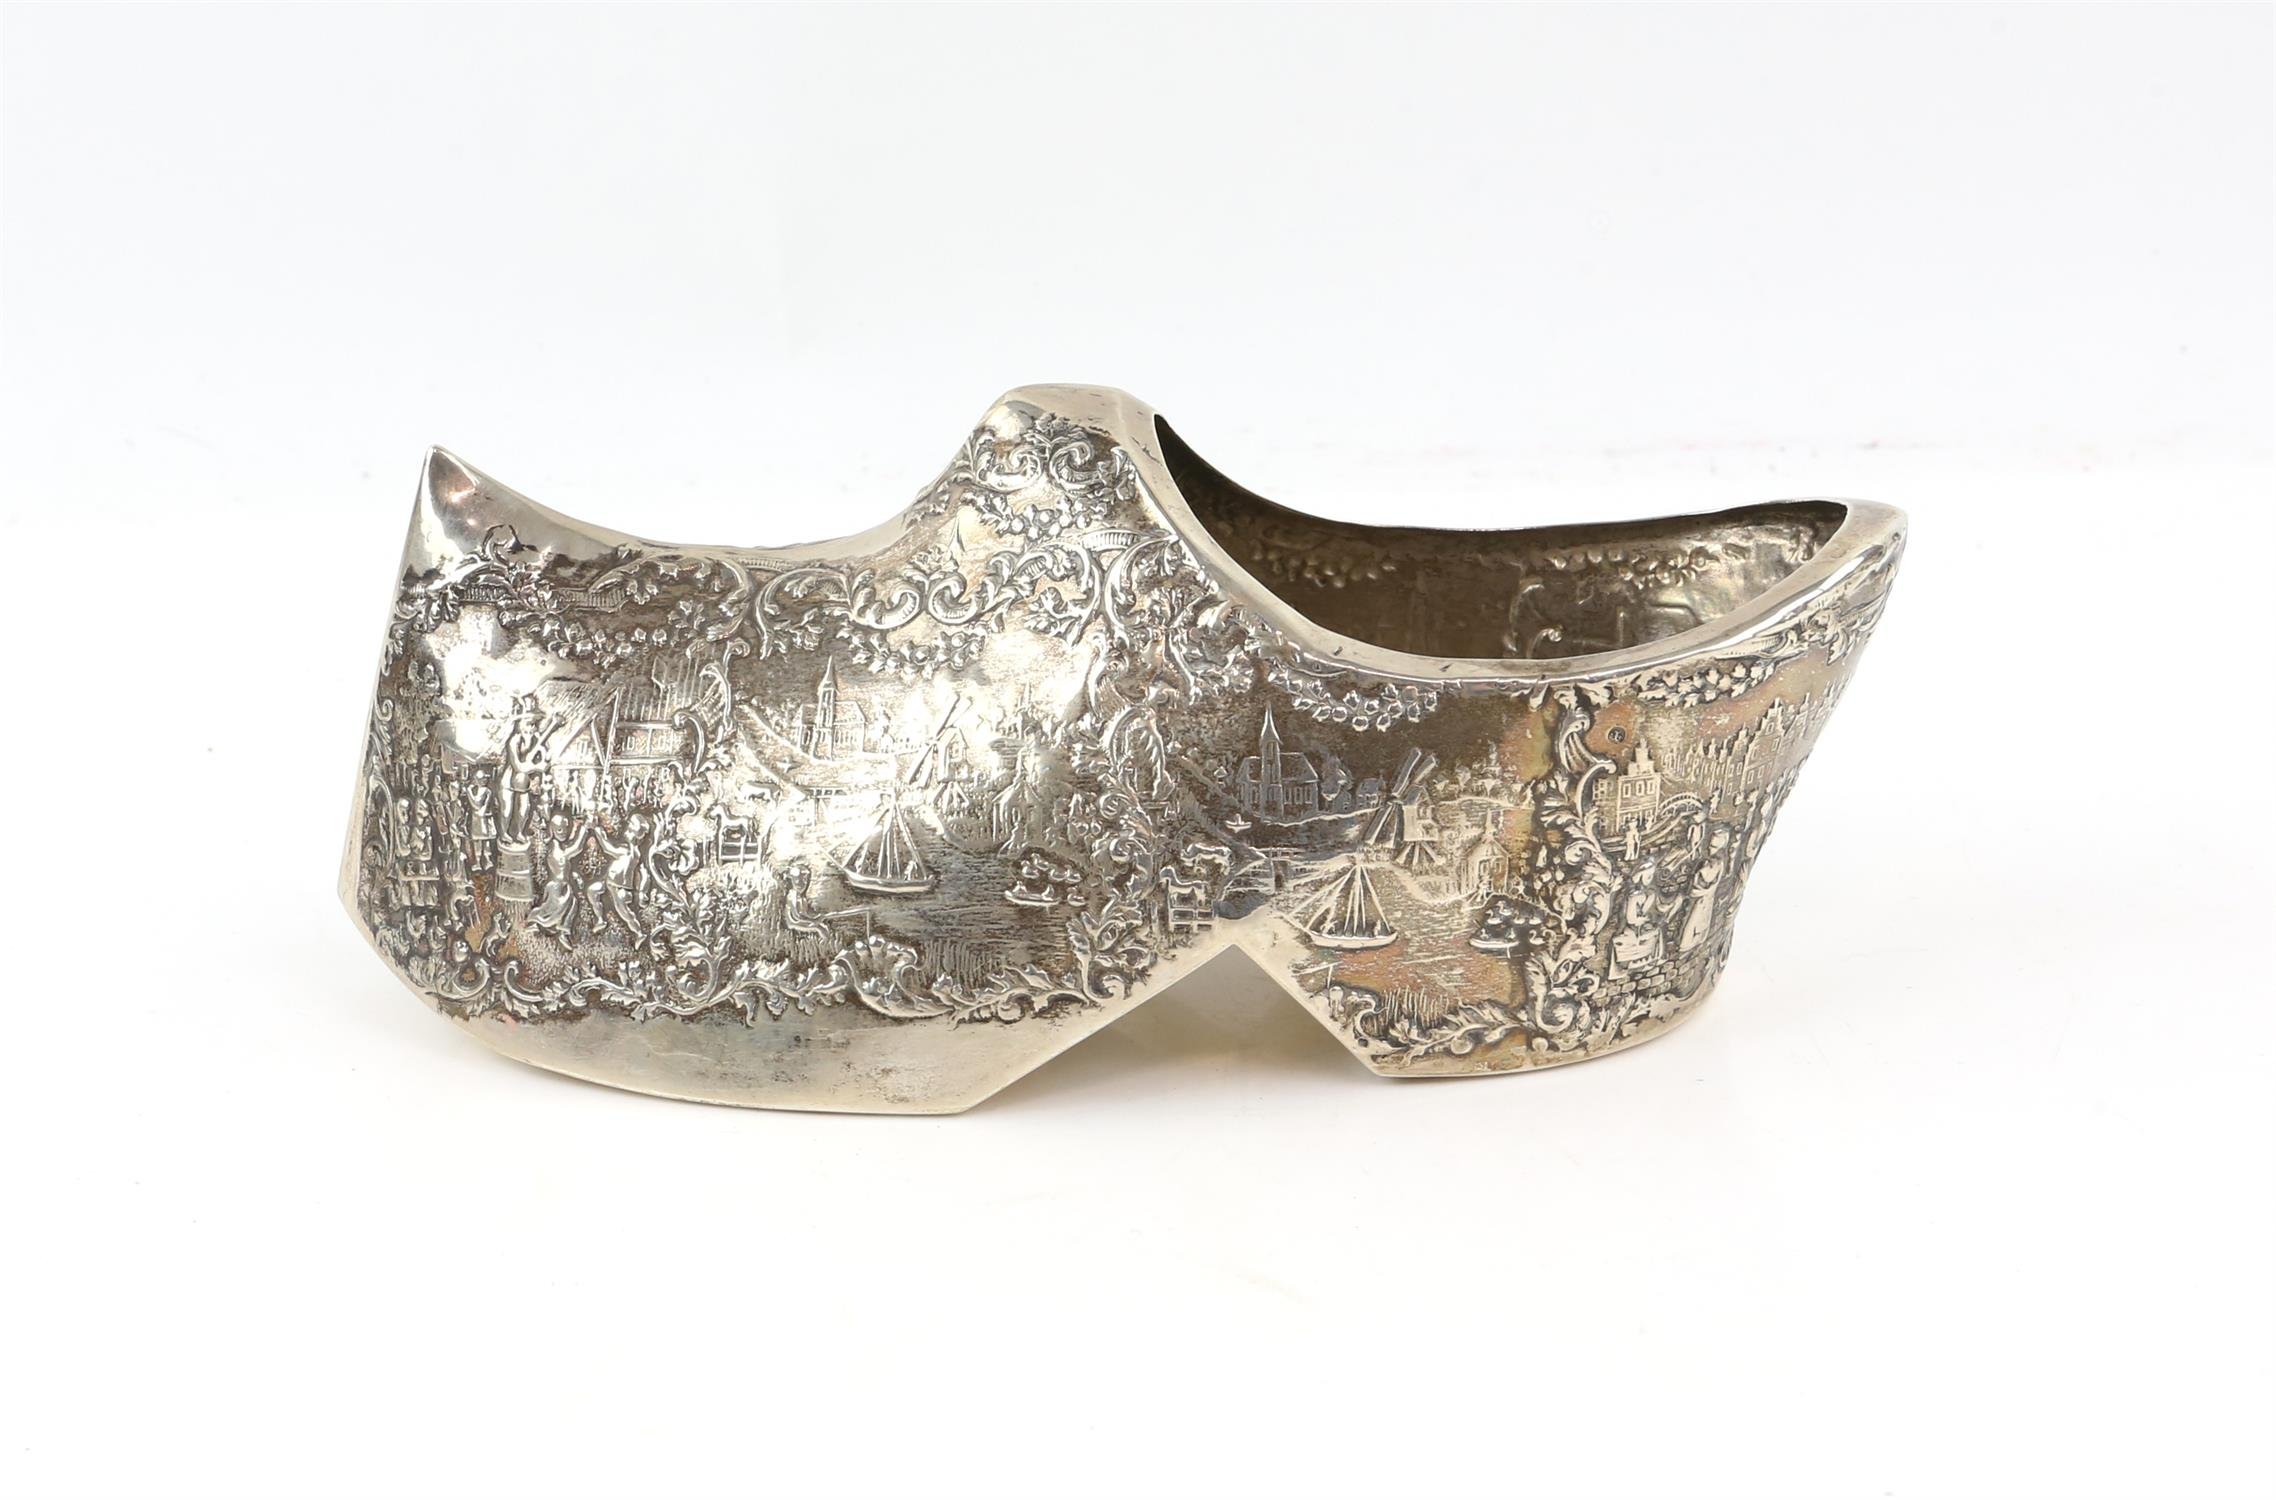 Large Dutch silver novelty model of a Clog embossed with Dutch scenes. marked for 835, 6.